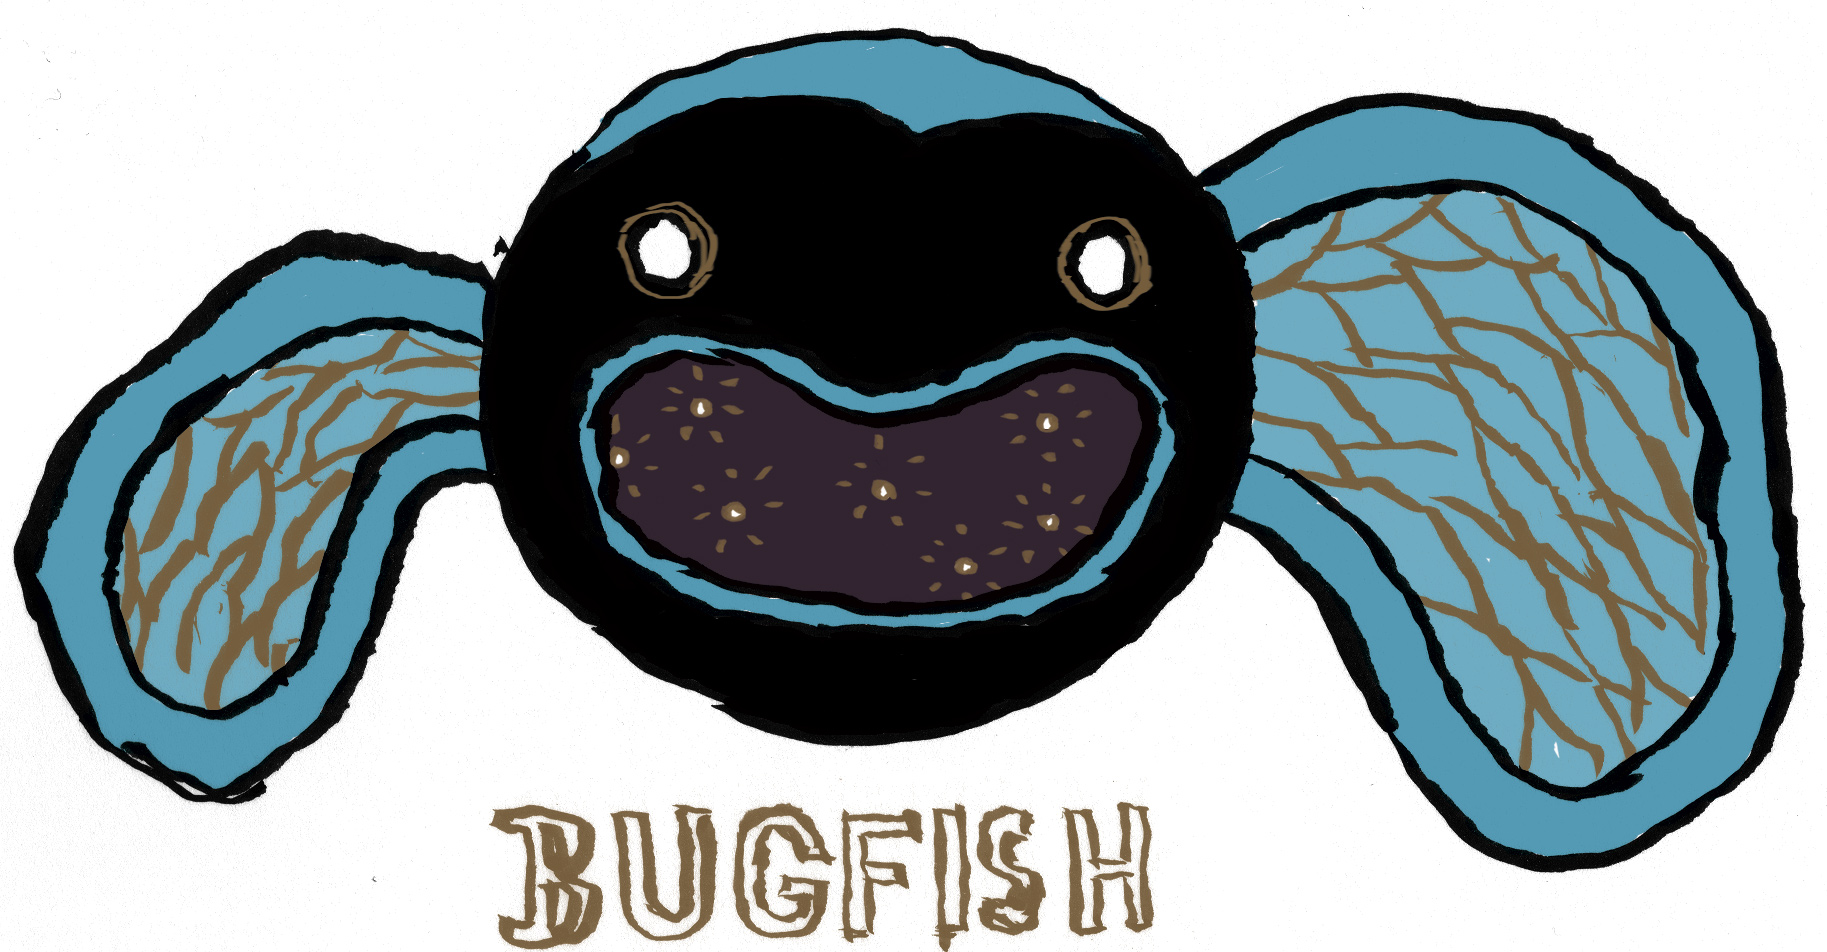 Bugfish - Concept/Illustration